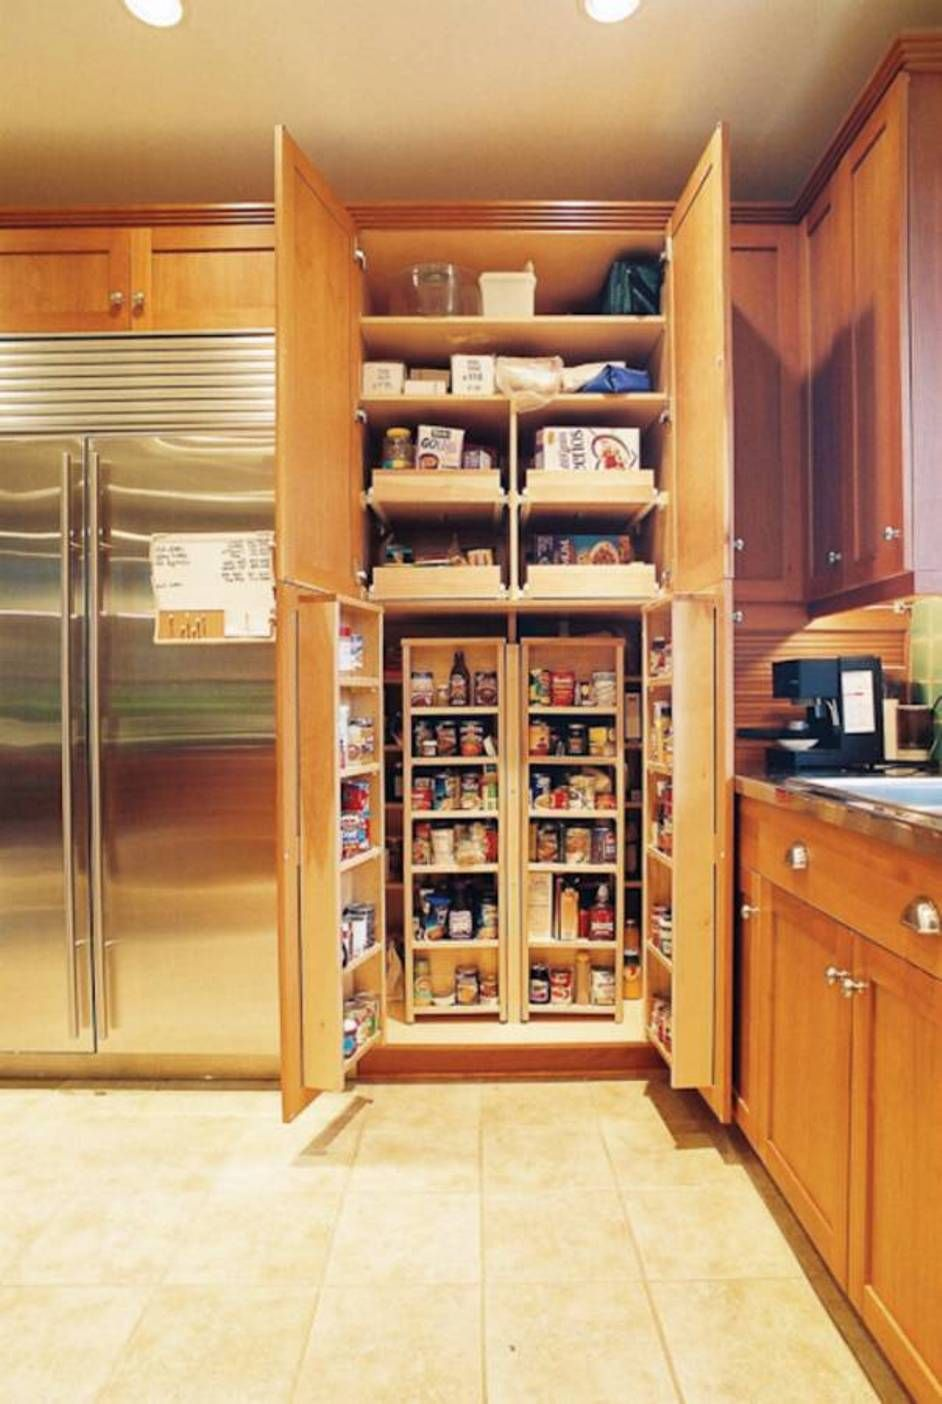 Spectacular Tall Oak Kitchen Pantry Cabinets With Rev A Shelf 45 Swing Out  Pantry Kit Also Pantry Door Mounted Wood Spice Rack And Satin Nickel Kitchen  ...